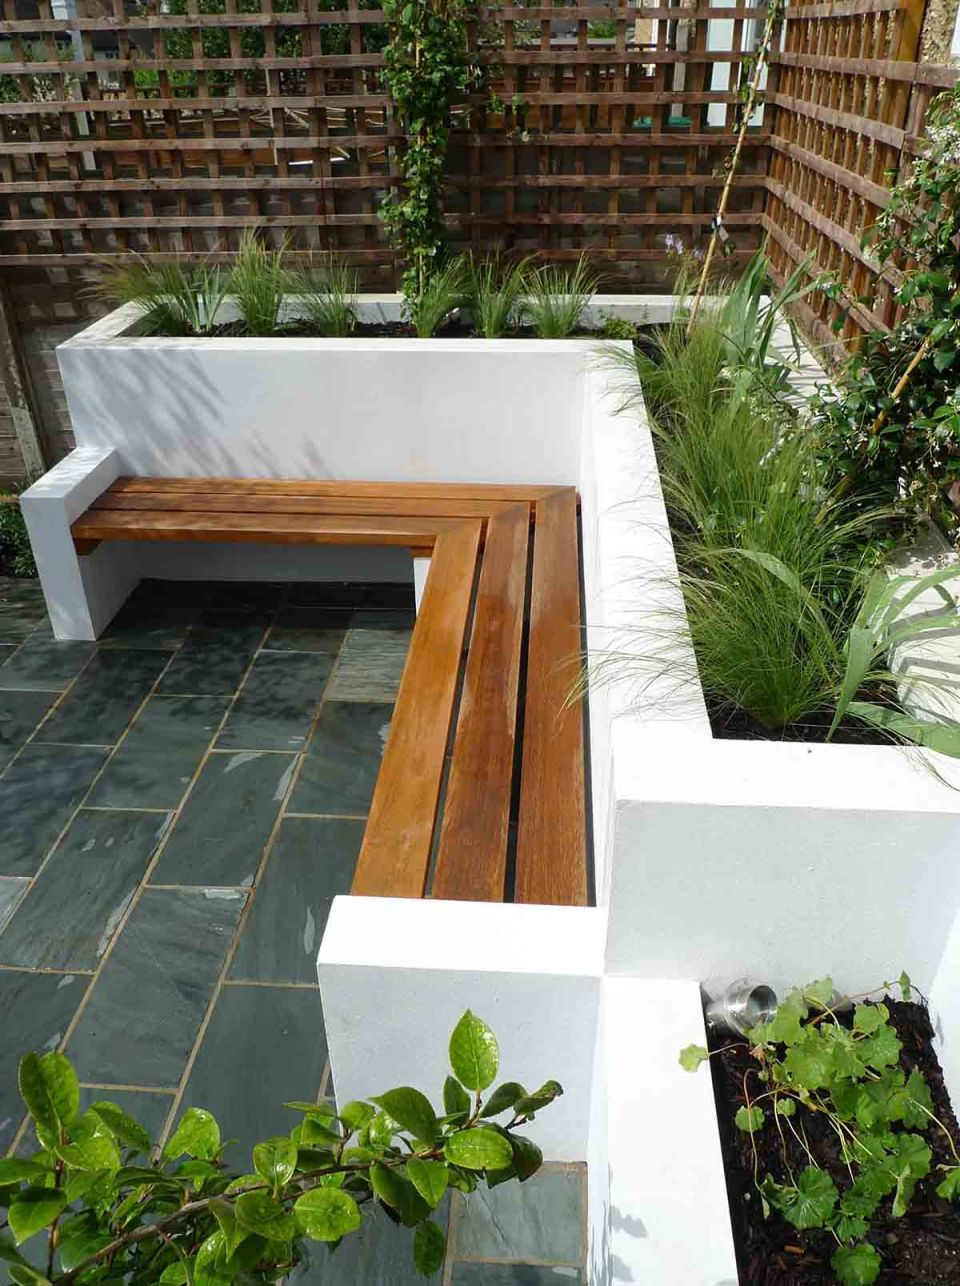 Built-In Patio Planter with Bench